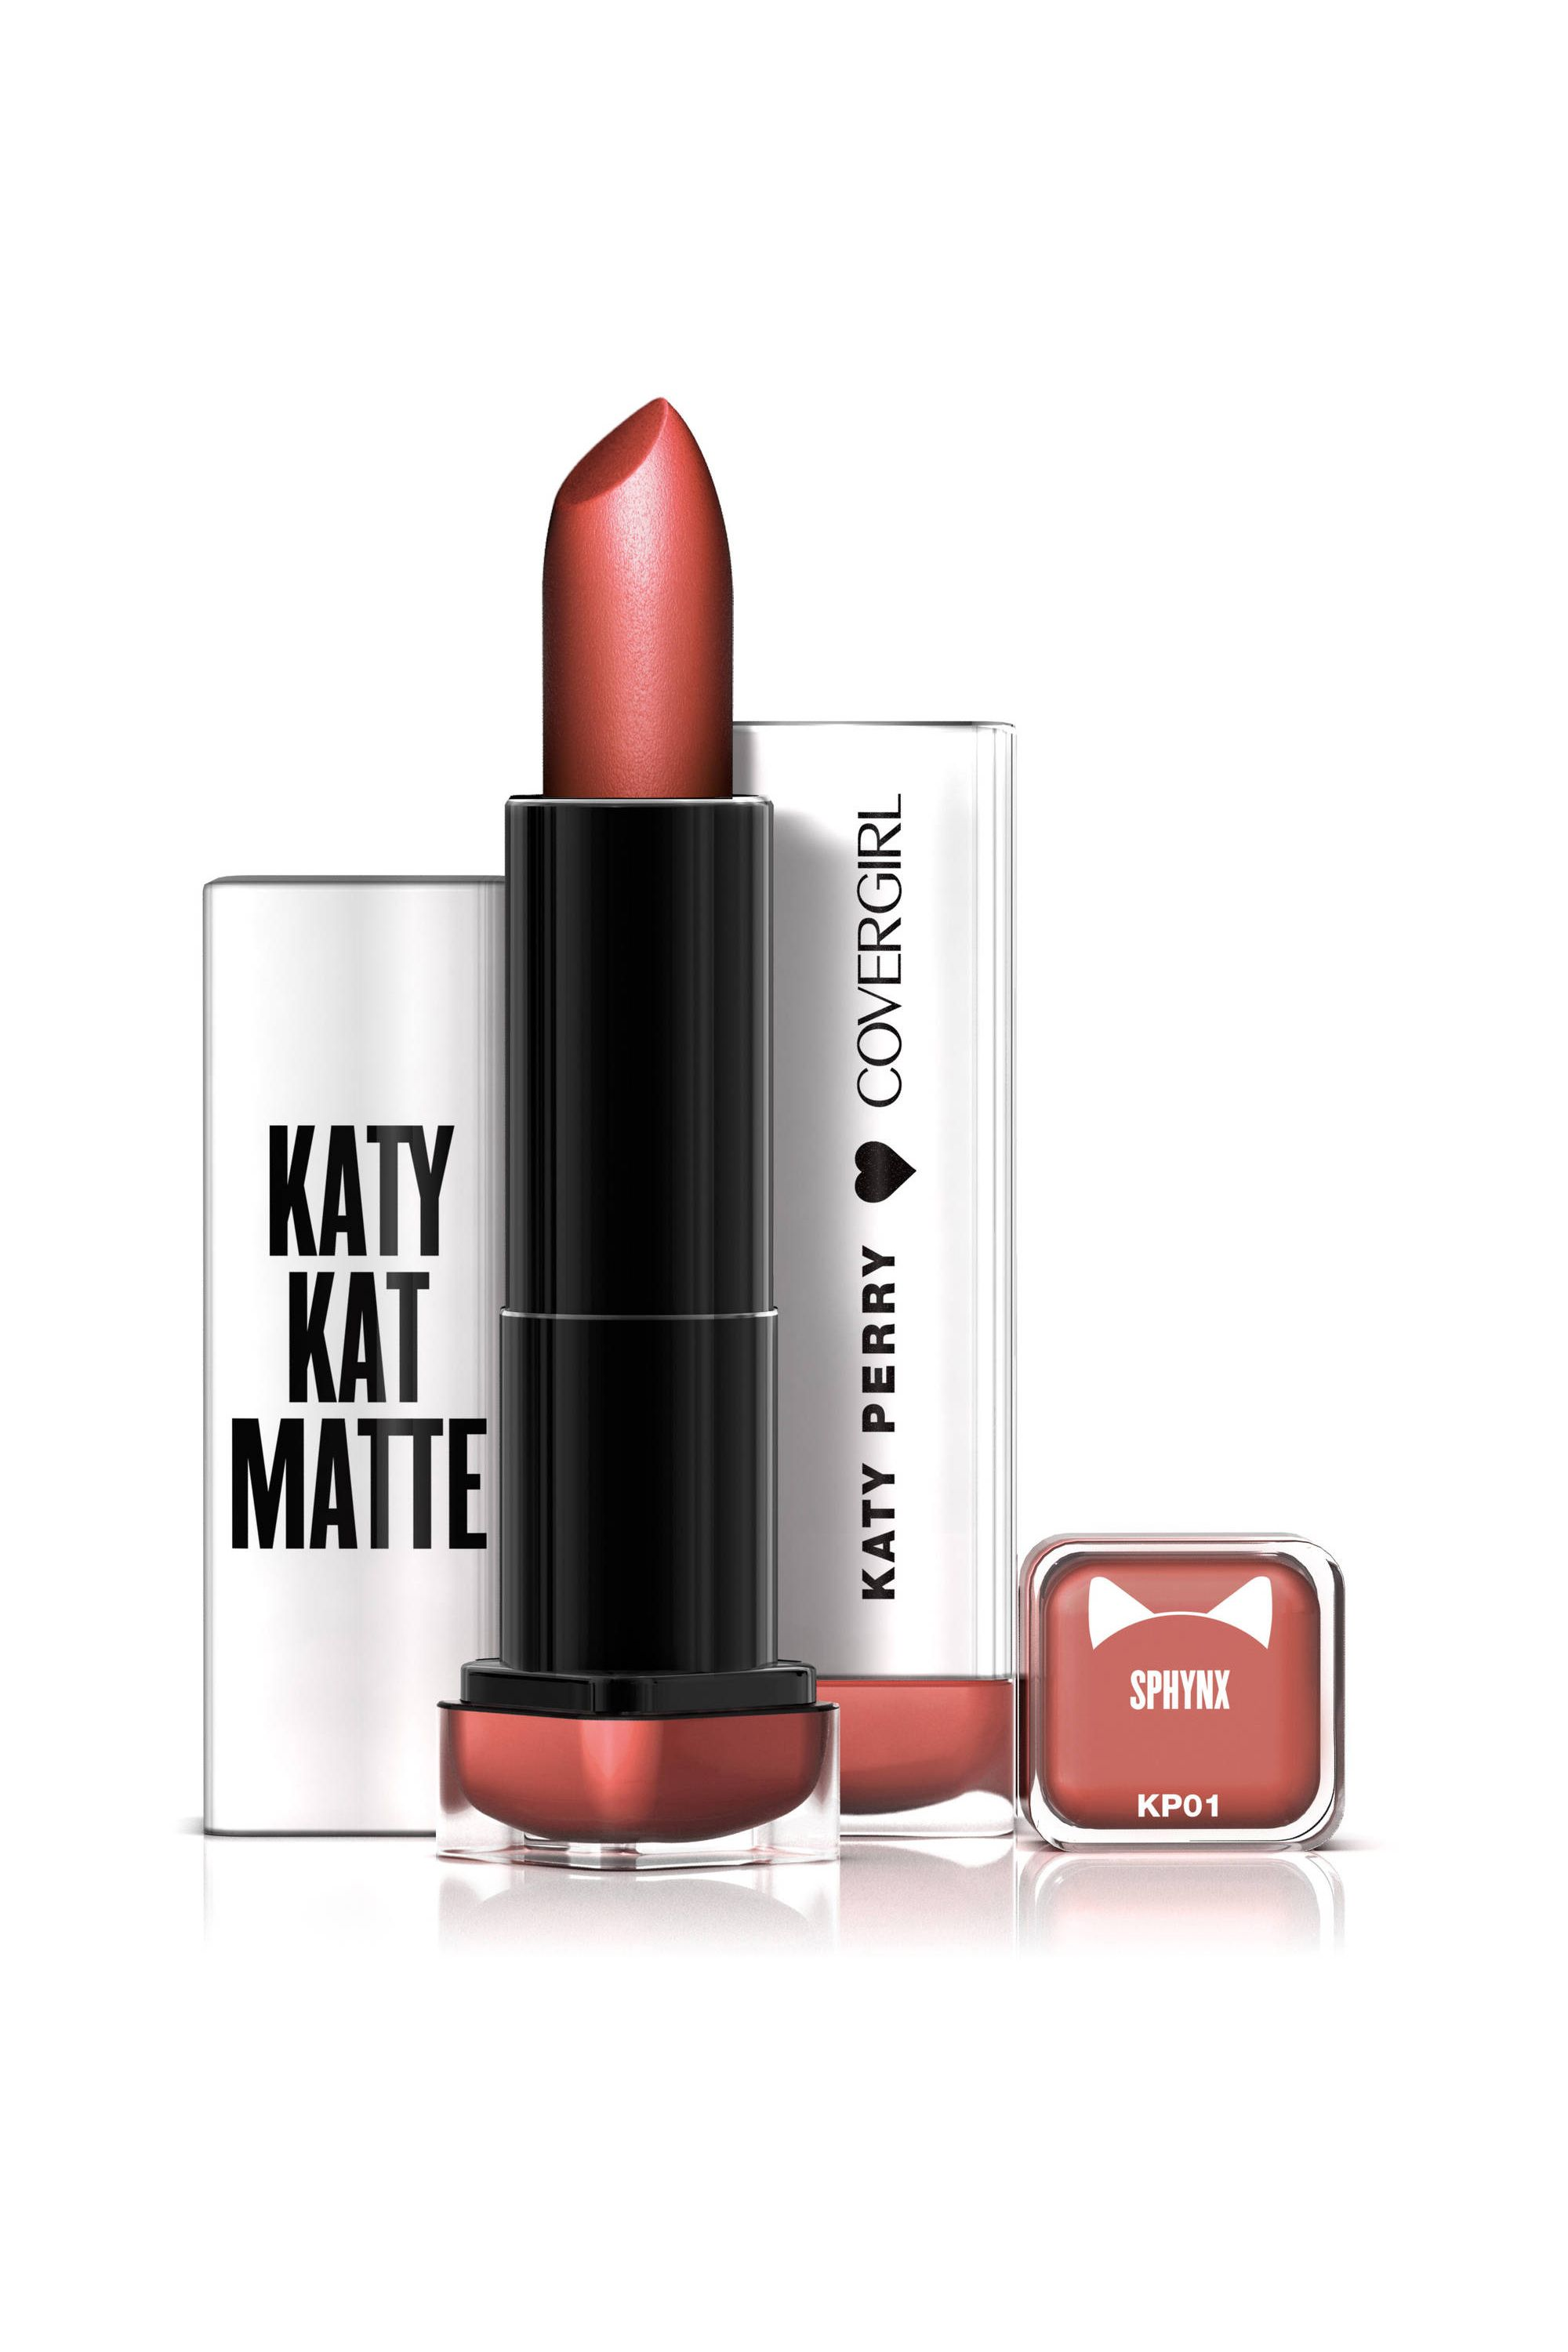 "<p>Don't let the name fool you, Katy Kat mattes are multi-dimensional and&nbsp&#x3B;moisturizing enough to apply without balm underneath. If like me, your natural lip color skews popsicle red, Sphynx is the ultimate your-lips-but-better toned-down shade.&nbsp&#x3B;— Julie Schott, Senior Beauty Editor</p><p><em data-redactor-tag=""em"" data-verified=""redactor"">CoverGirl Katy Kat Matte in Sphynx, $7&#x3B;&nbsp&#x3B;</em><a href=""http://www.walmart.com/ip/COVERGIRL-Katy-Kat-Matte-Lipstick-Sphynx-.12-oz-created-by-Katy-Perry/50275605"" target=""_blank""><em data-redactor-tag=""em"" data-verified=""redactor"">walmart.com</em></a></p>"